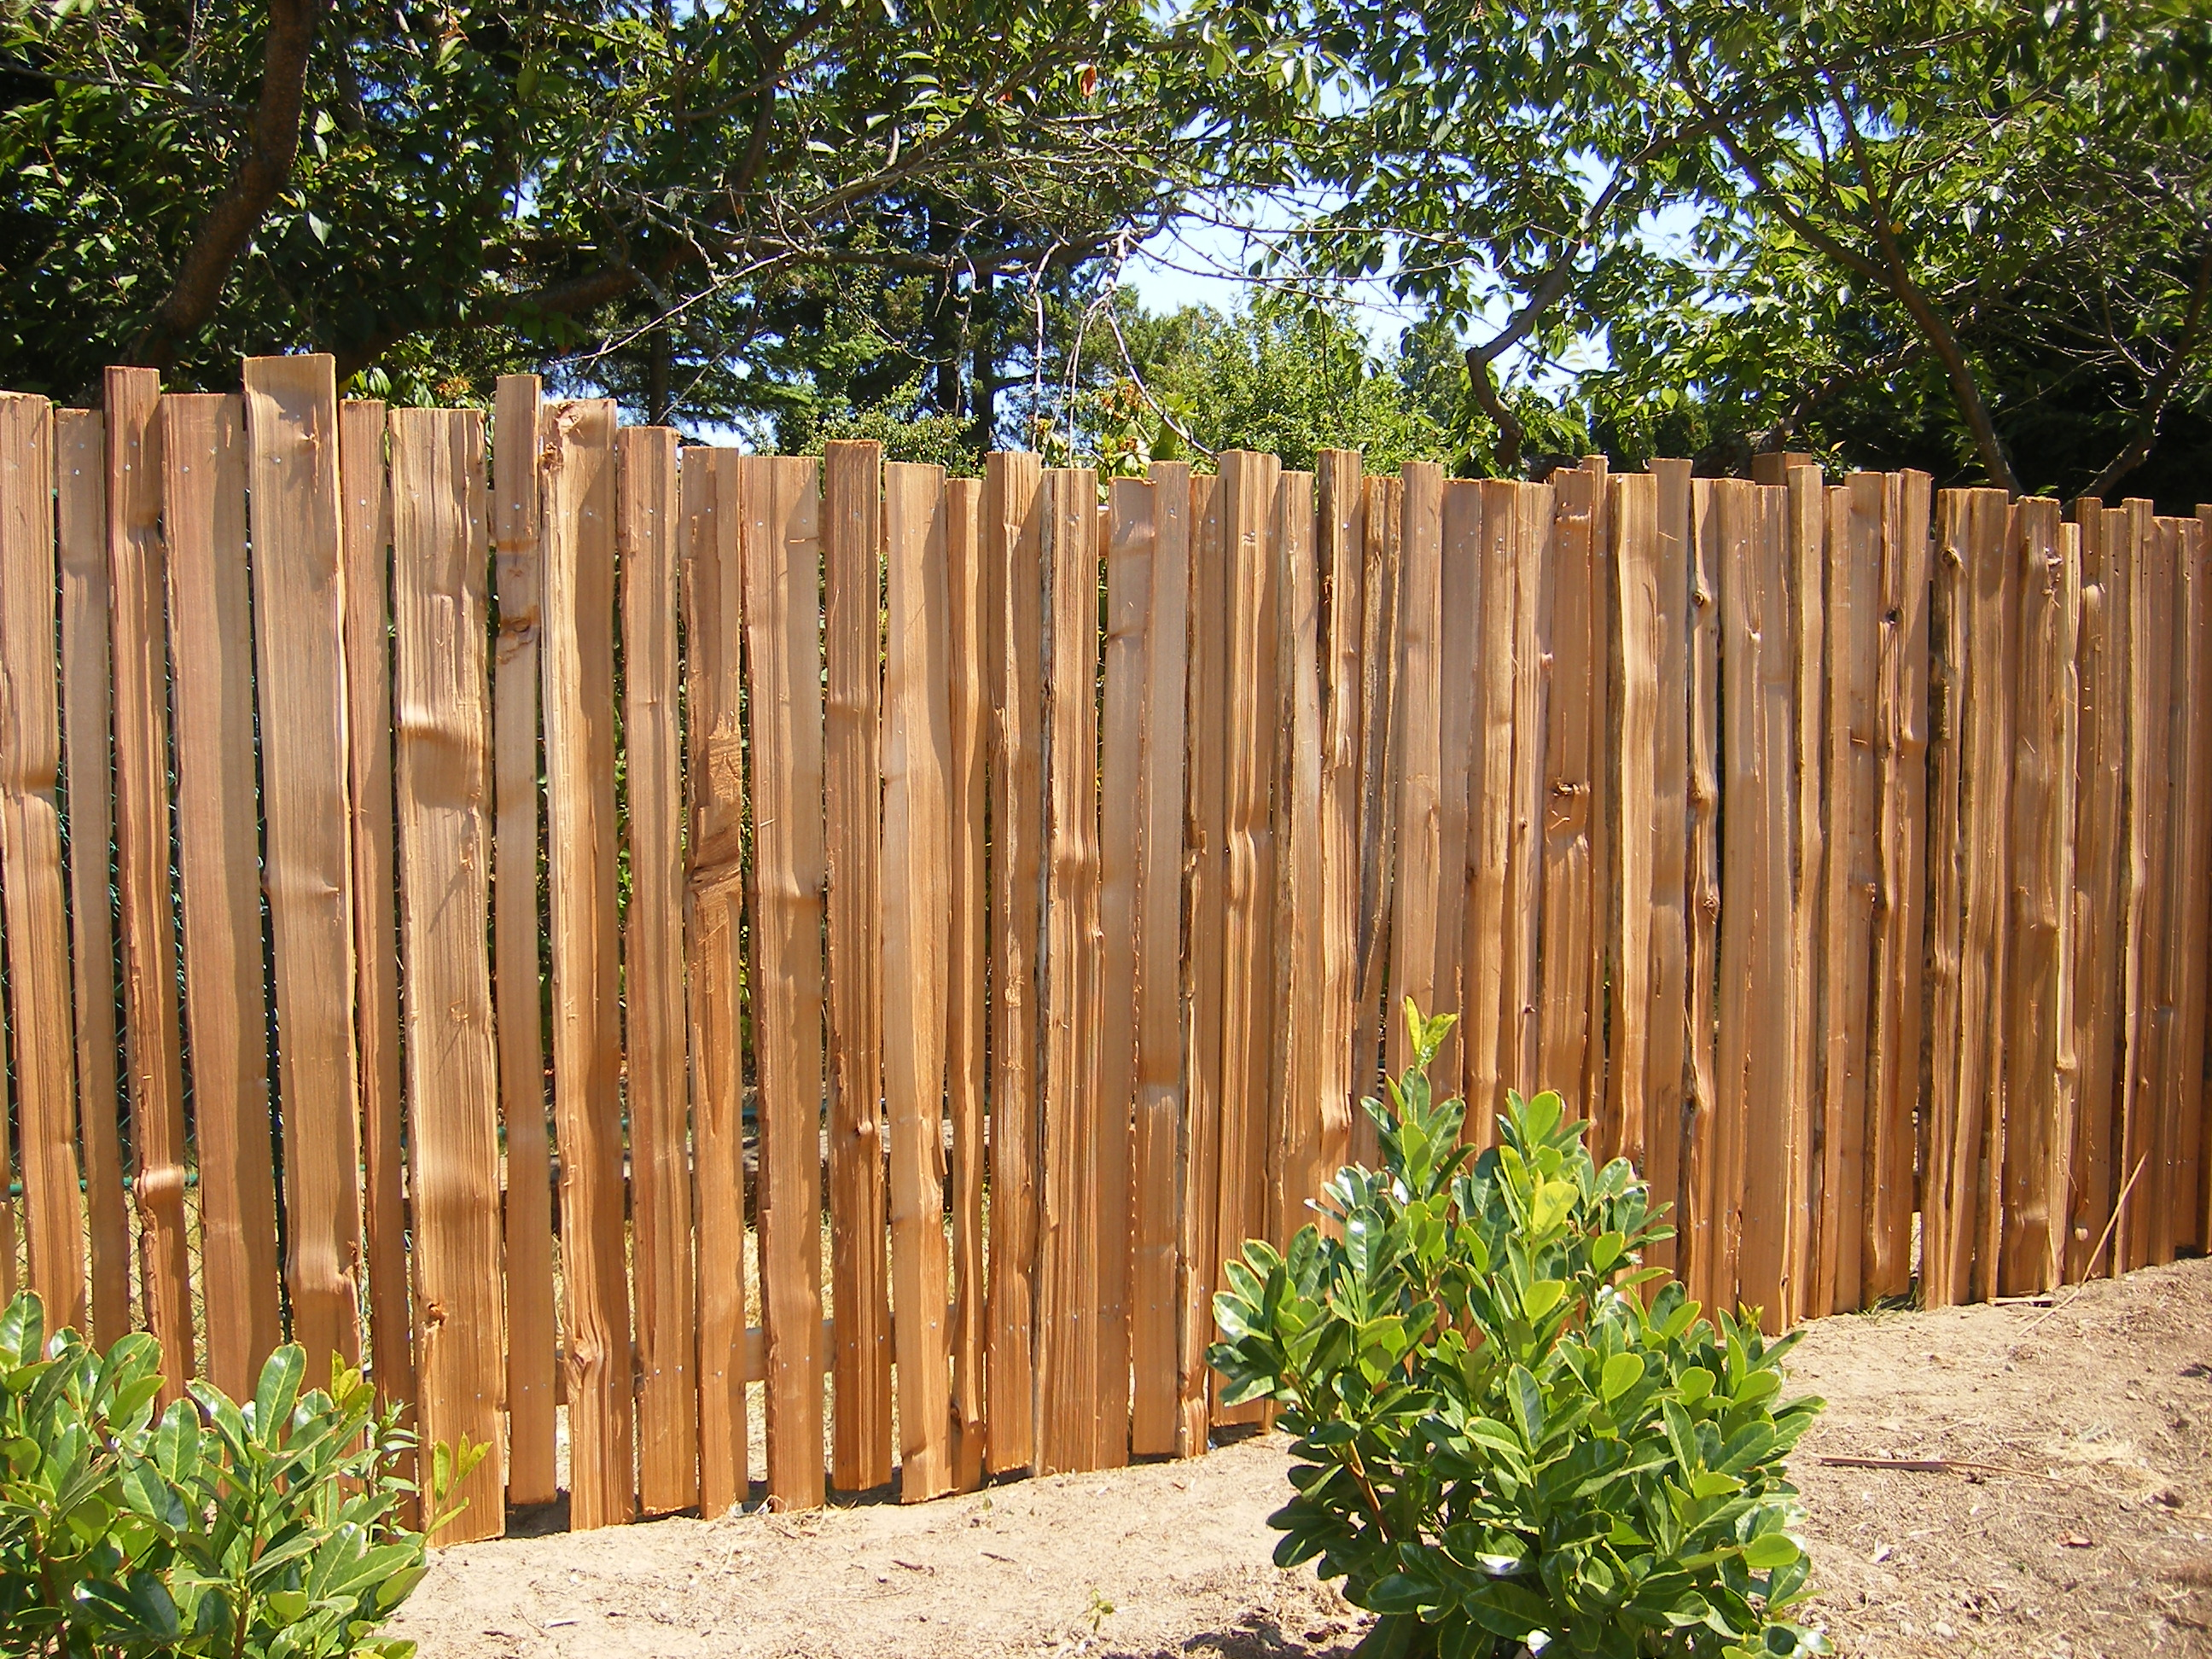 Dimished art of hand spitting grapestake fencing fence for Barda de madera para jardin